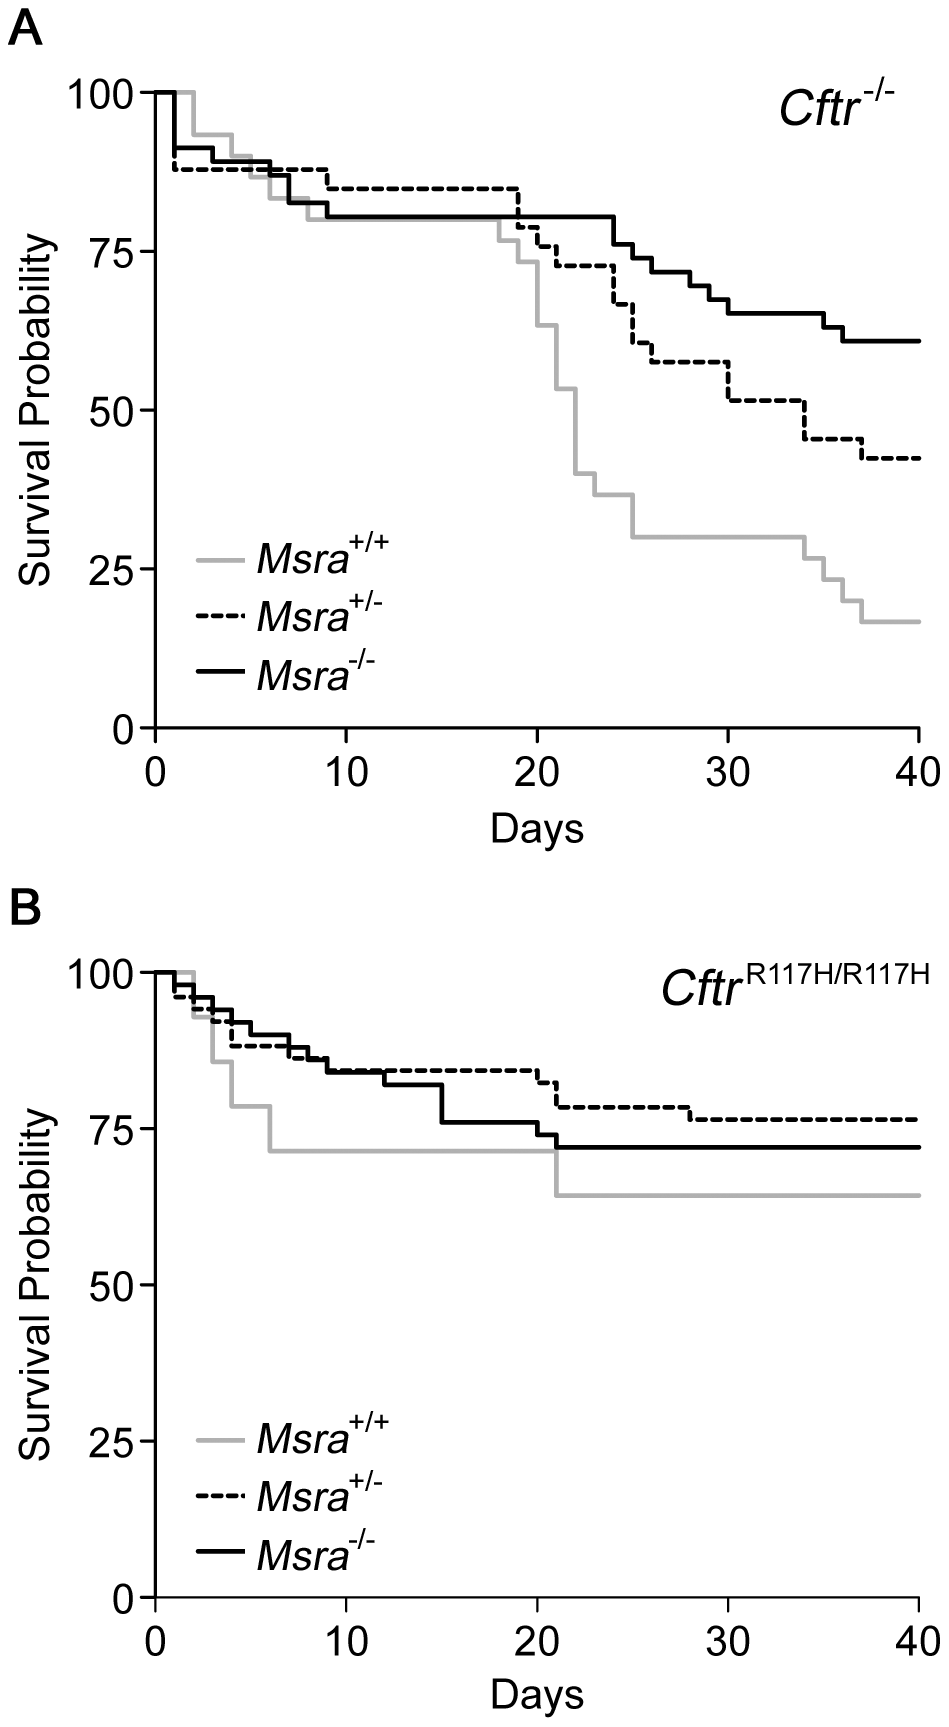 Kaplan-Meier survival curves in CF mice according to <i>Msra</i> genotype.